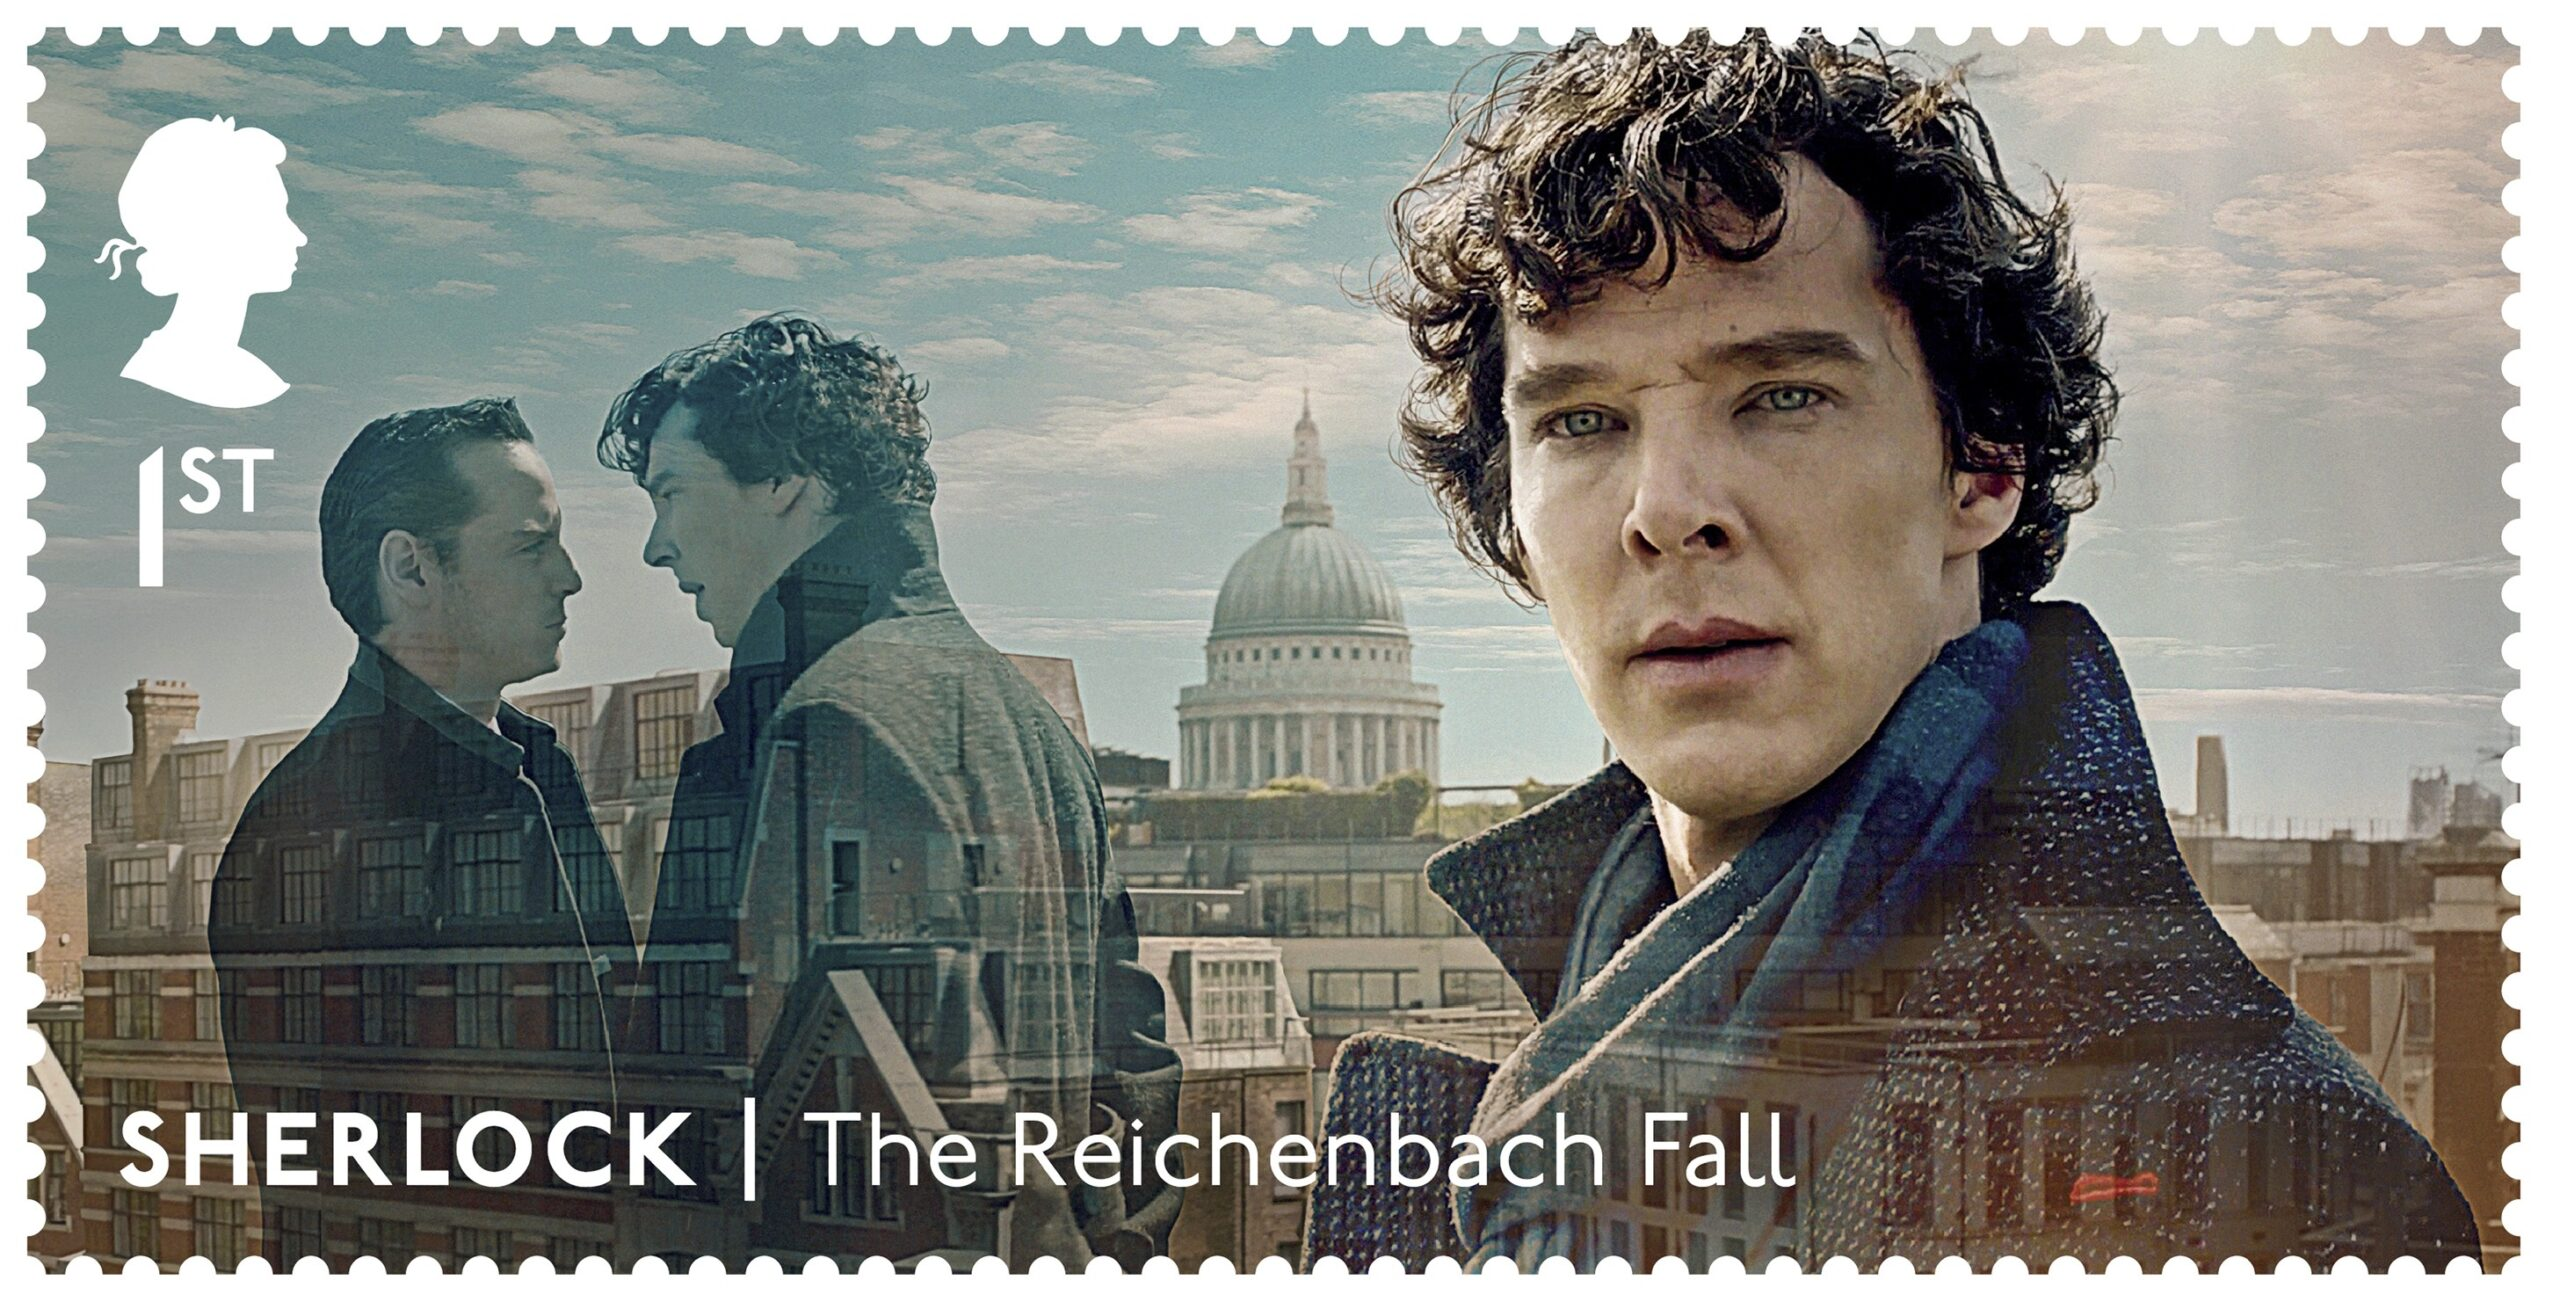 Royal Mint & Royal Mail Collaborate on Sherlockian Philatelic – Numismatic Covers